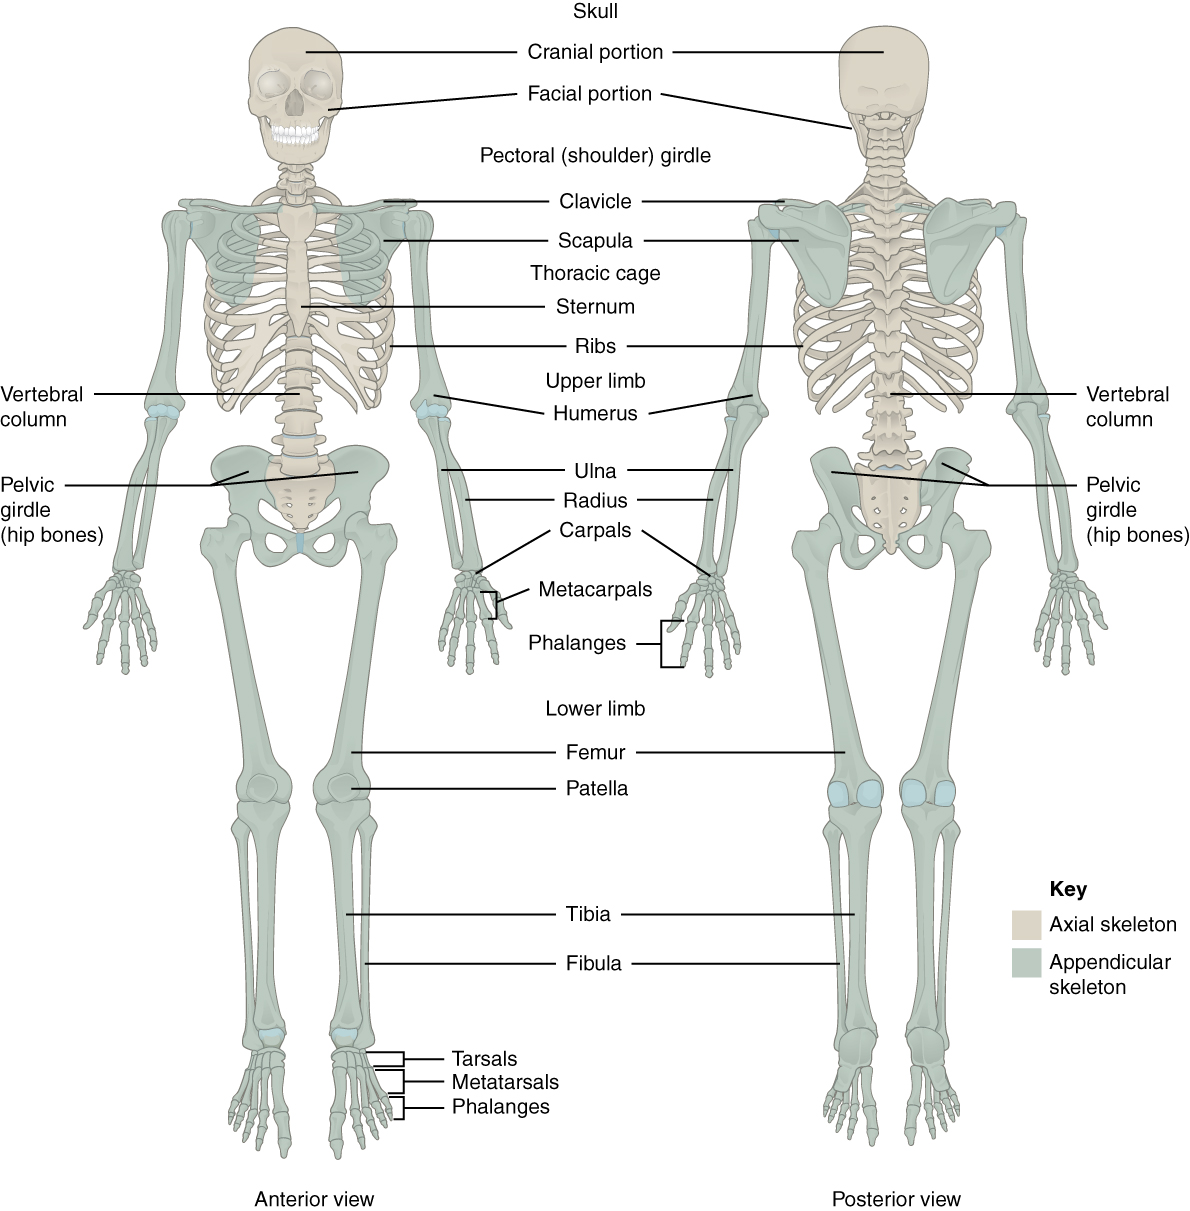 hight resolution of this figure shows the human skeleton the left panel shows the anterior view and